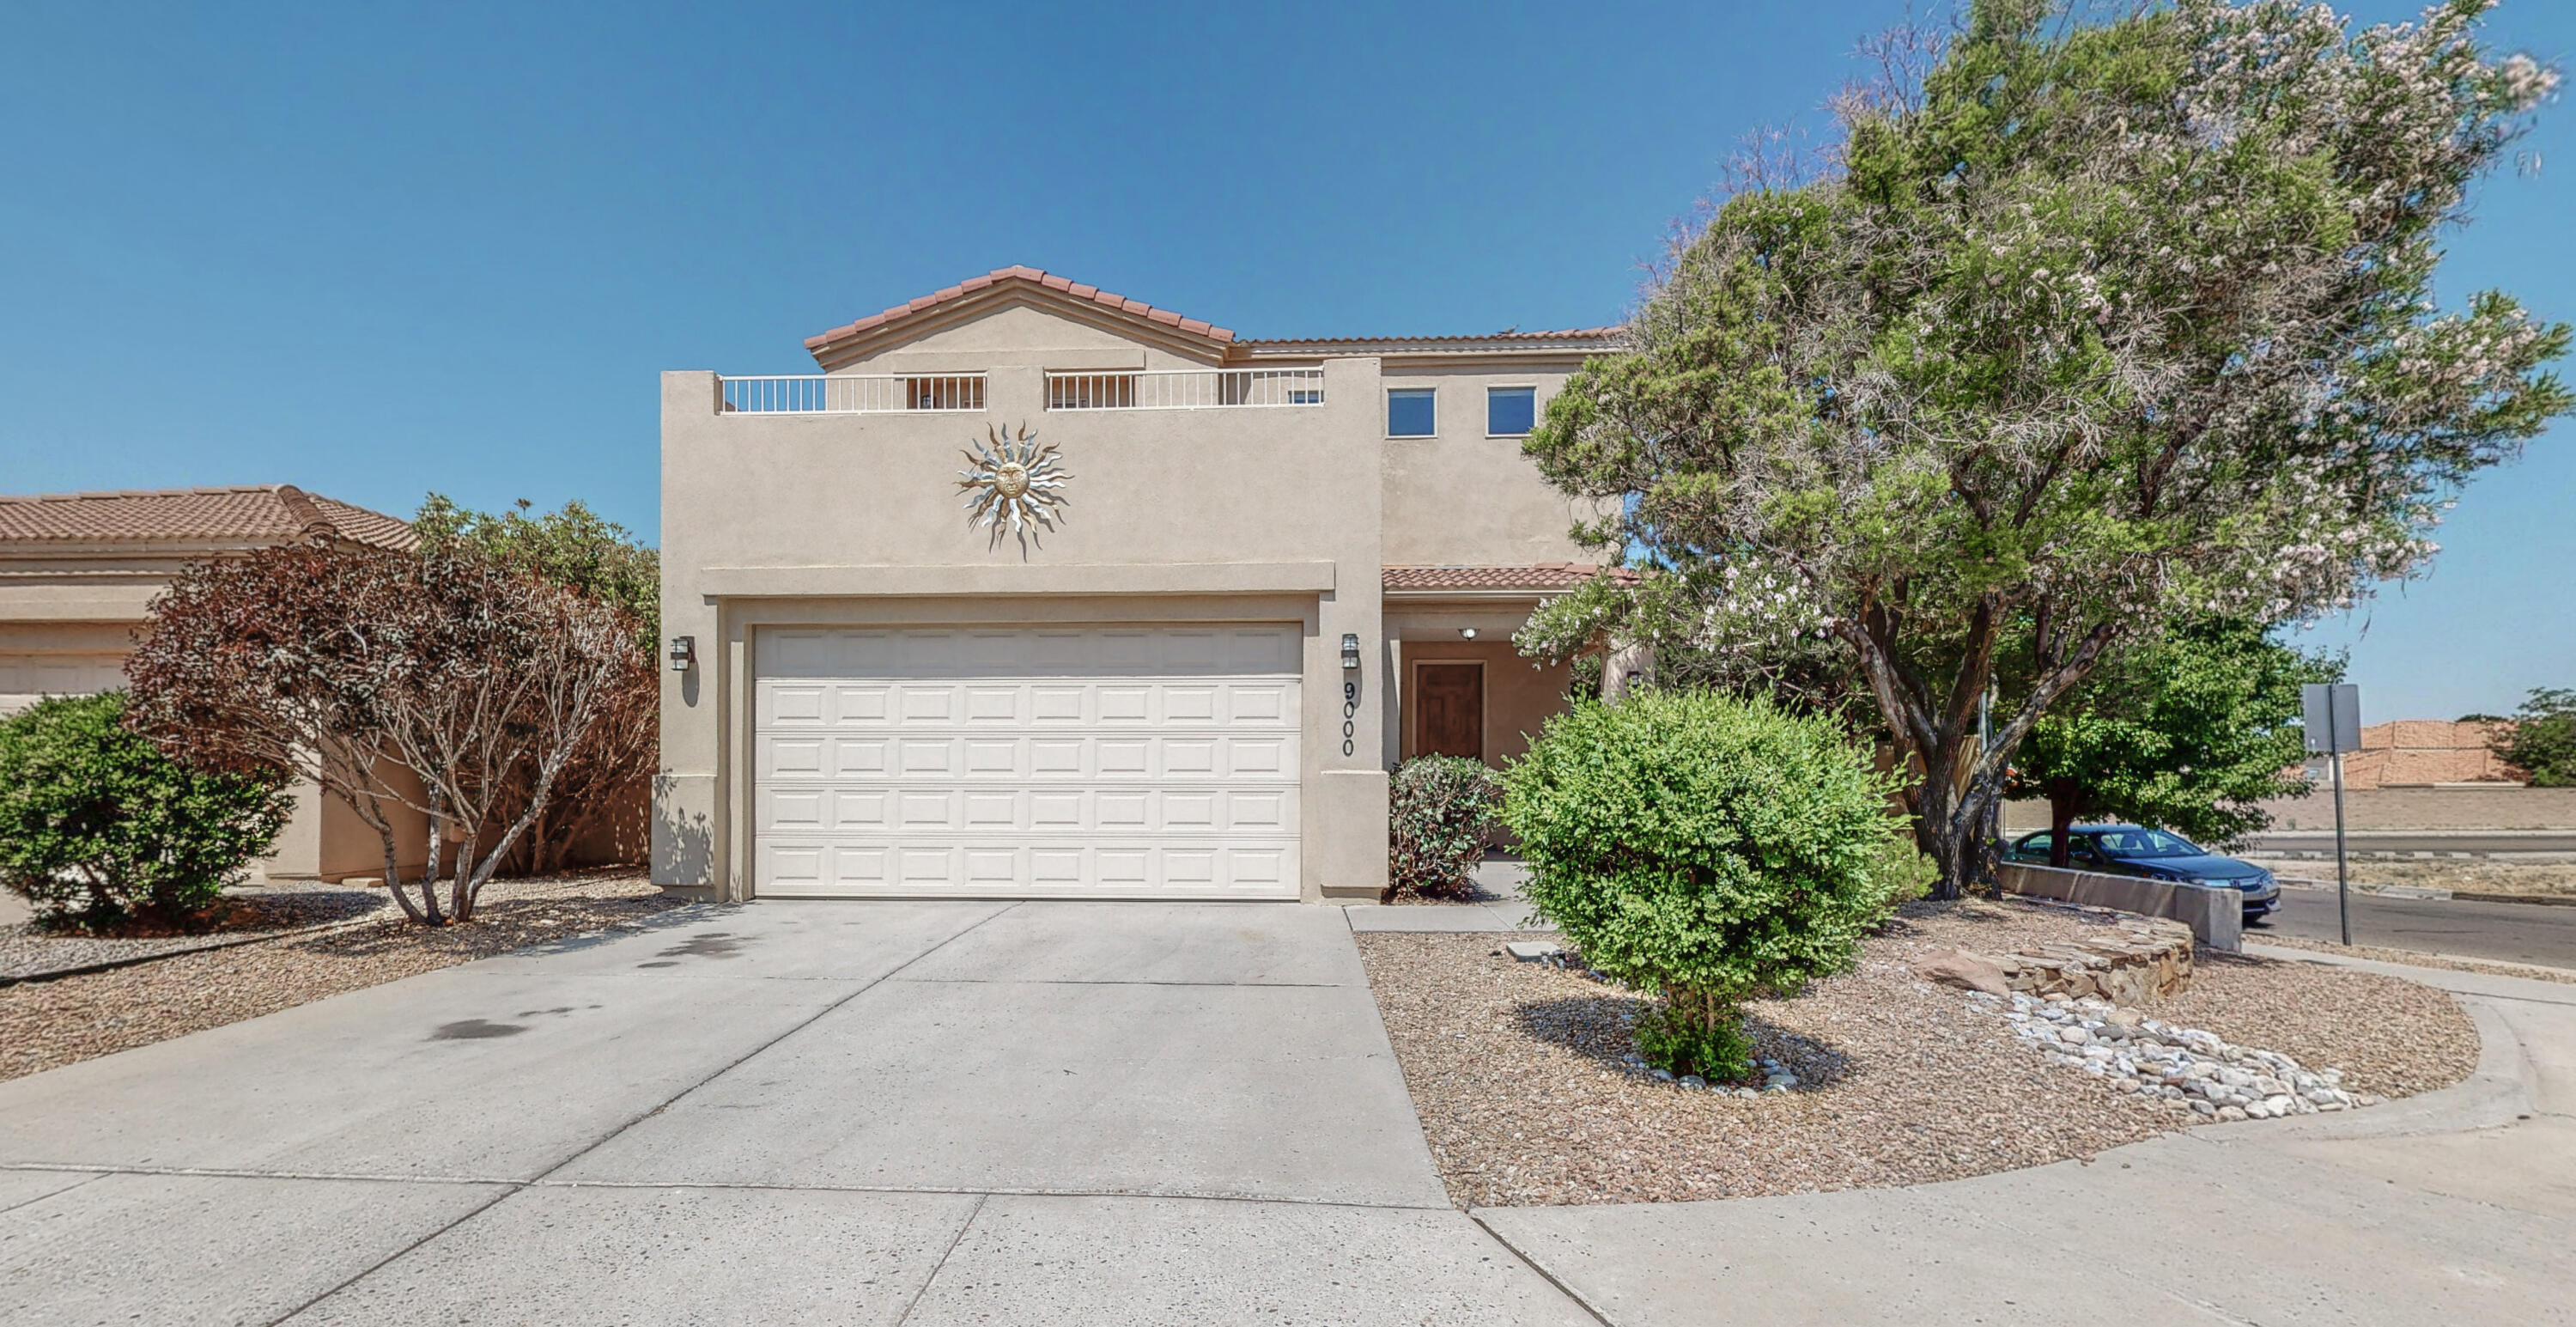 Great Views!! Warm and inviting move-in ready home in the high demand ABQ Acres West area. La Cueva High School District and convenient location near shopping and dining. Enjoy views of the Sandia Mountains and nighttime city lights from 2 spacious second-story patios! Bright living room has gas log fireplace and ceiling fan. Brand new freestanding gas range and dishwasher, beautiful & easy-to-maintain Corian countertops, and an office with French doors adjacent to the dining room. Wood and tile floor throughout, refrigerated air, waterfall feature & covered patio in the backyard and artificial grass. The spacious Master Bedroom has separate garden tub and shower as well as a sunny patio! This is the house for you!